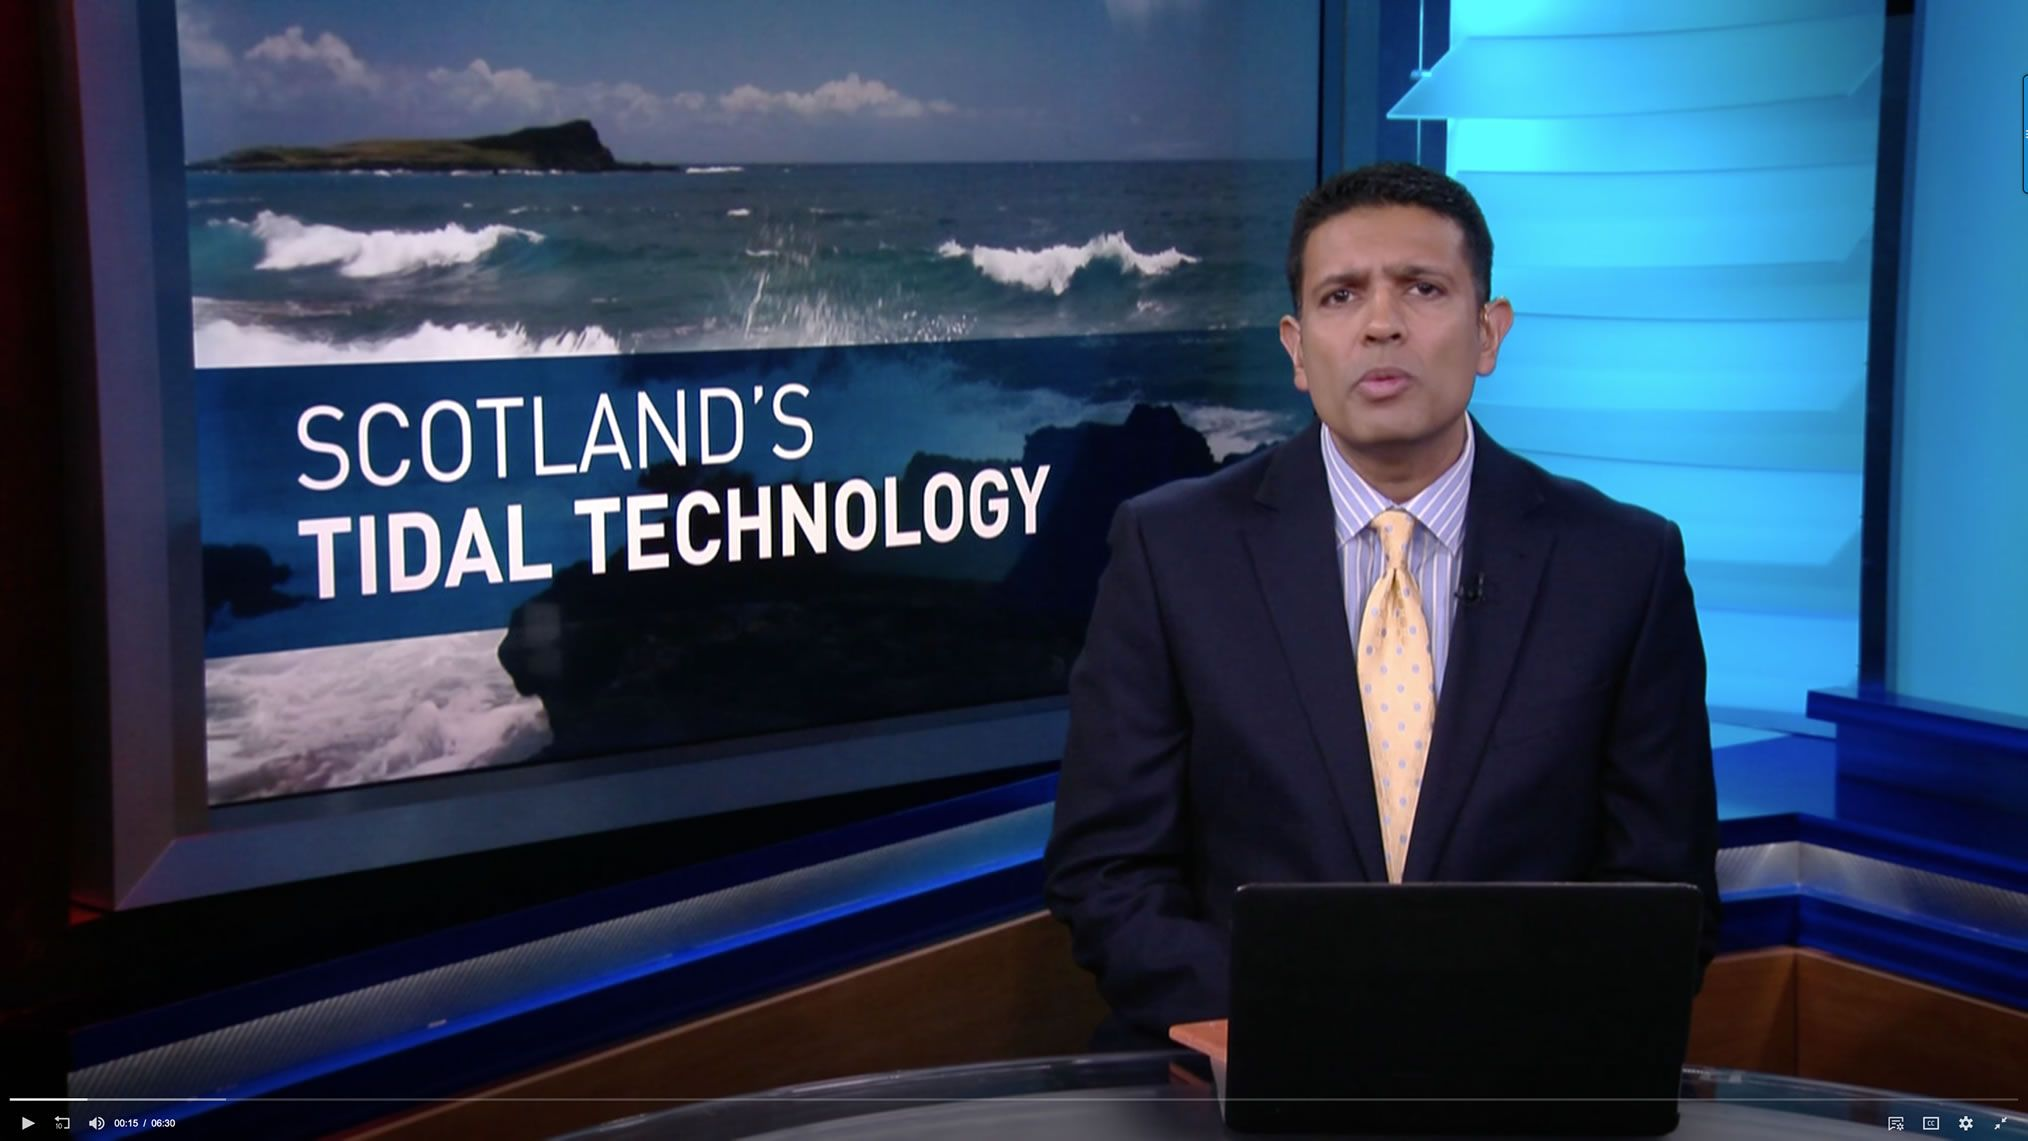 Scotland is betting on tidal energy